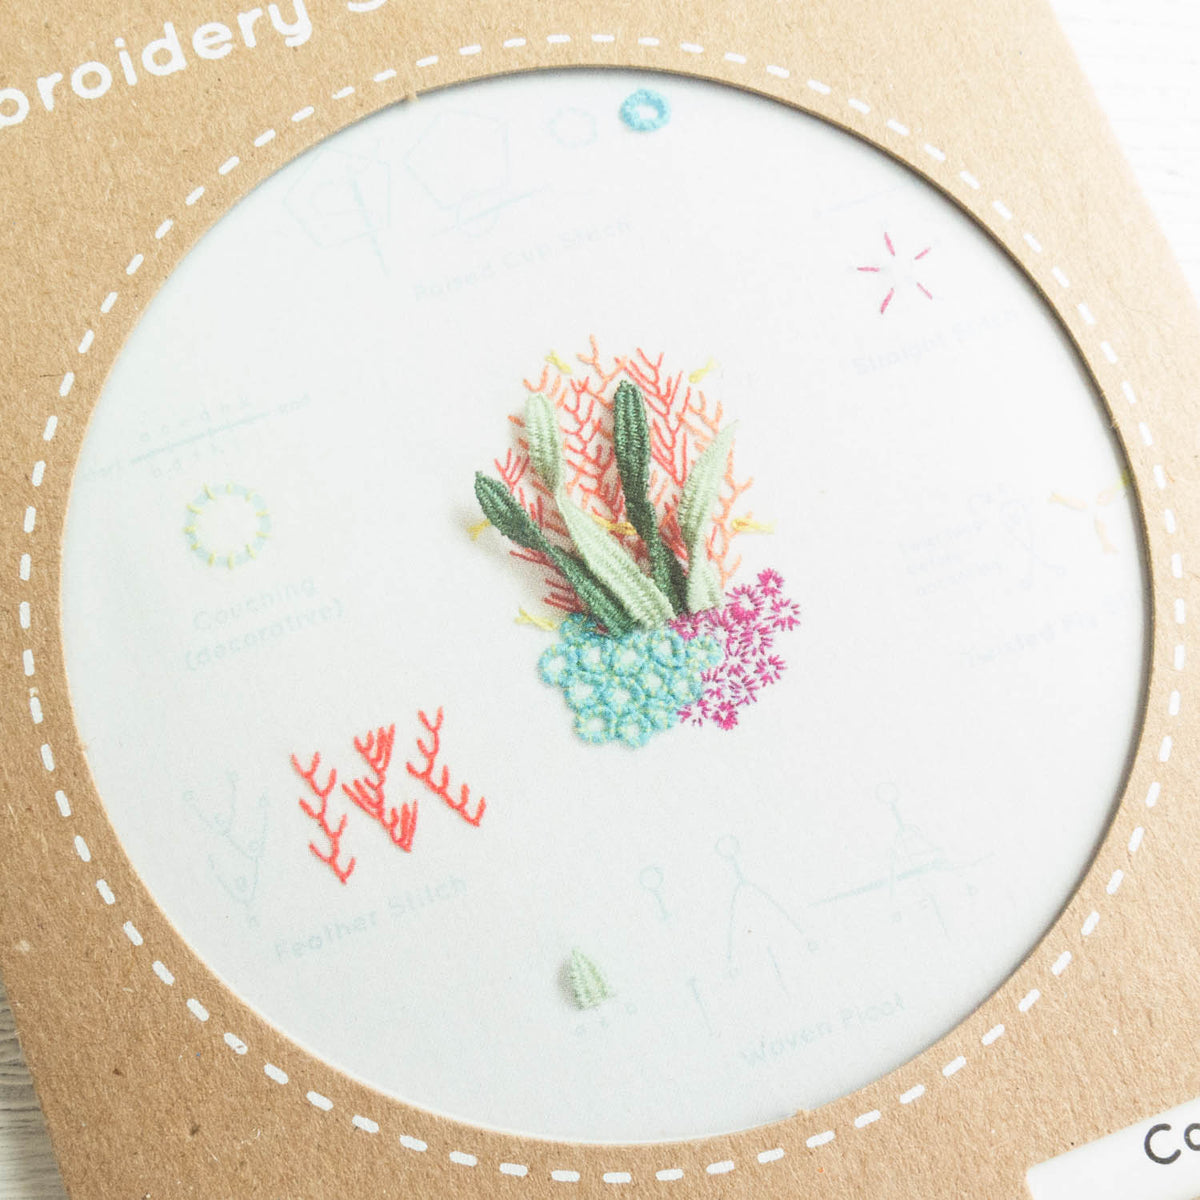 Kiriki Press Embroidery Stitch Sampler - Coral Reef Embroidery Kit - Snuggly Monkey